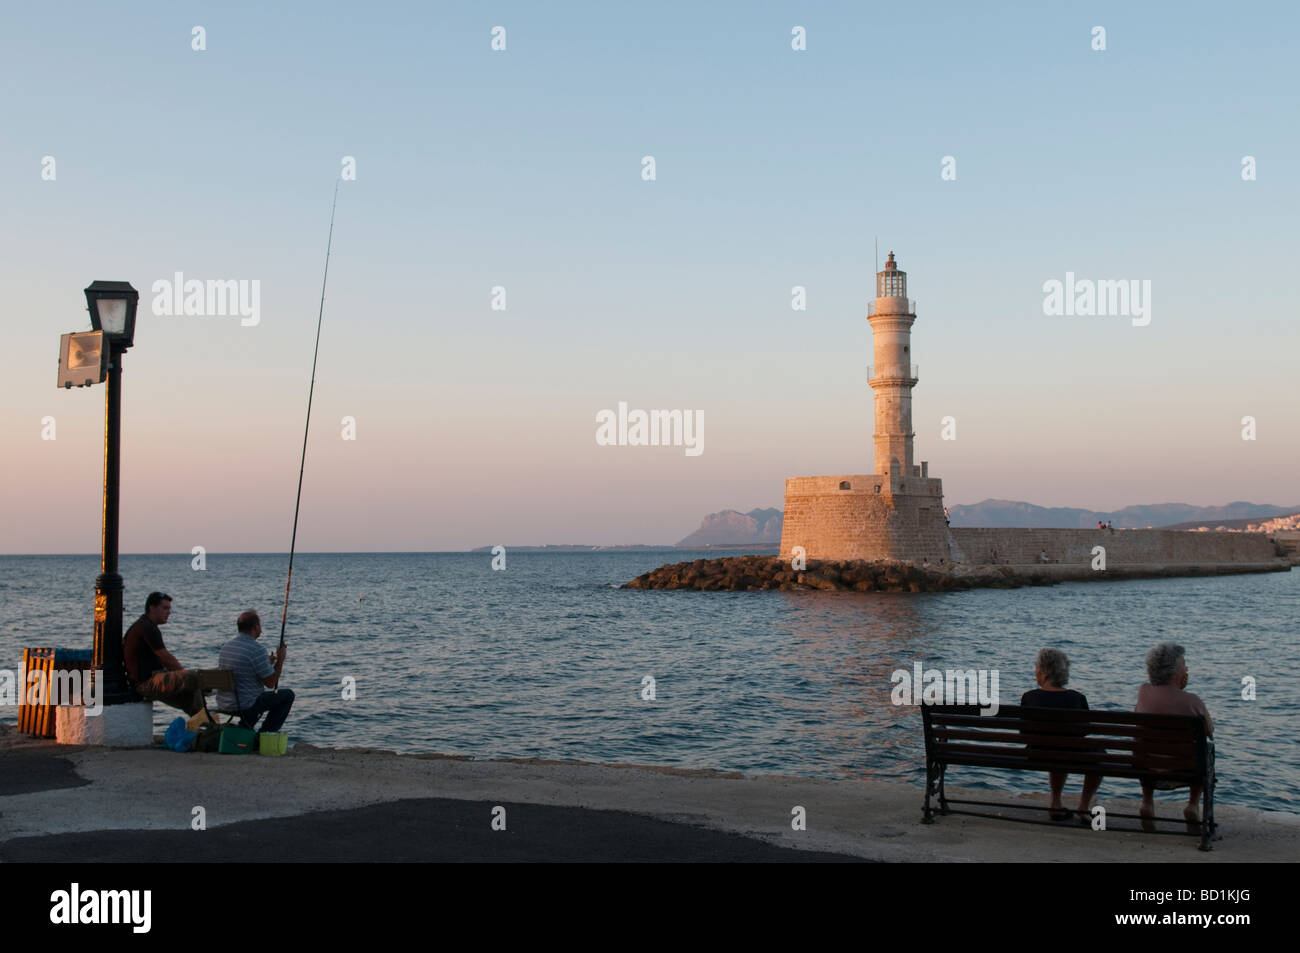 Angling in the Venetian Harbour at sunset. Chania, Crete, Greece - Stock Image